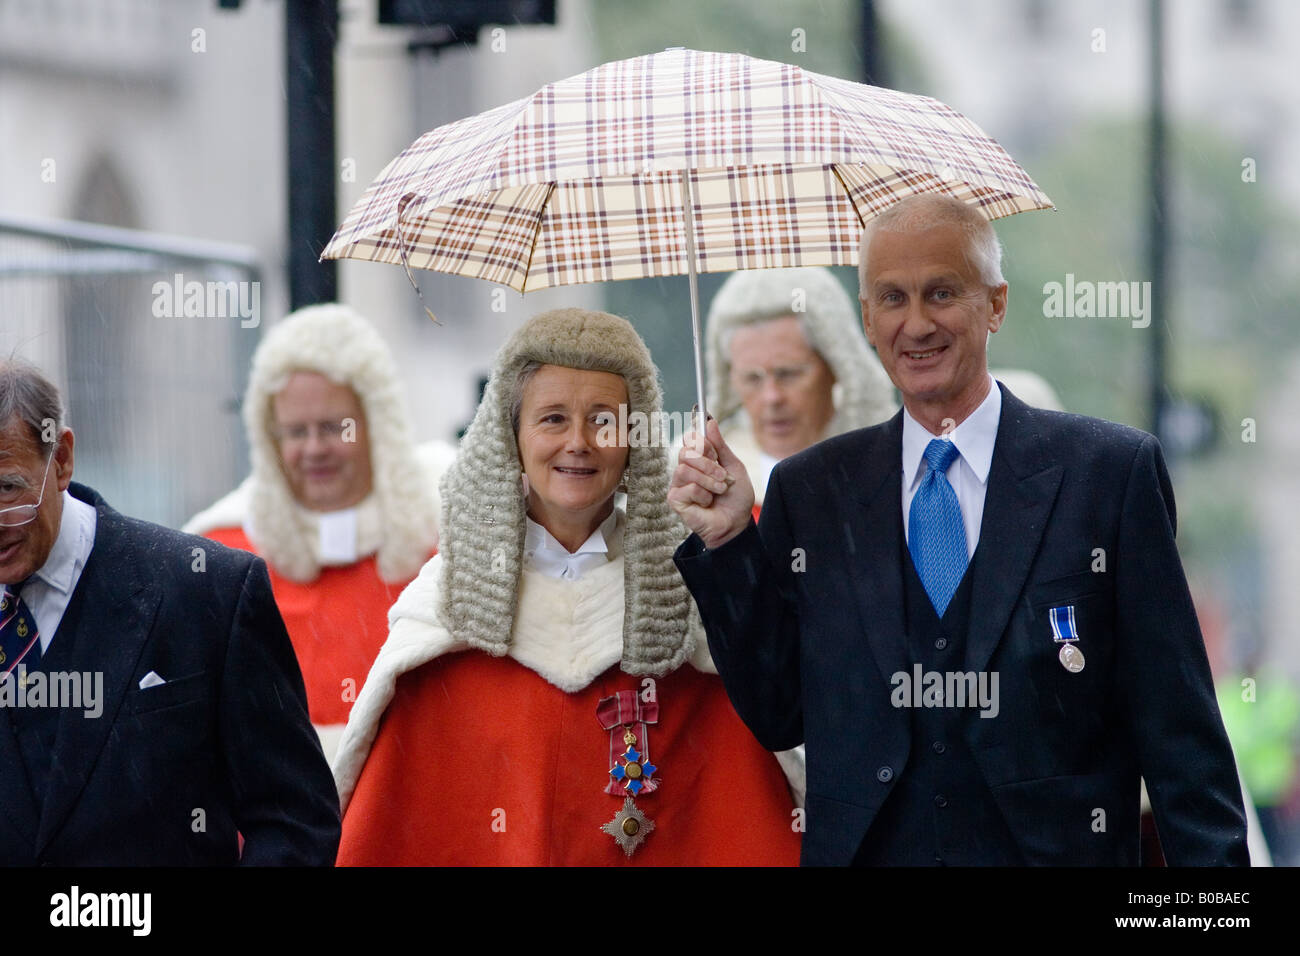 Lady judge sheltered from rain in Judges Procession from Westminster Abbey London England United Kingdom - Stock Image